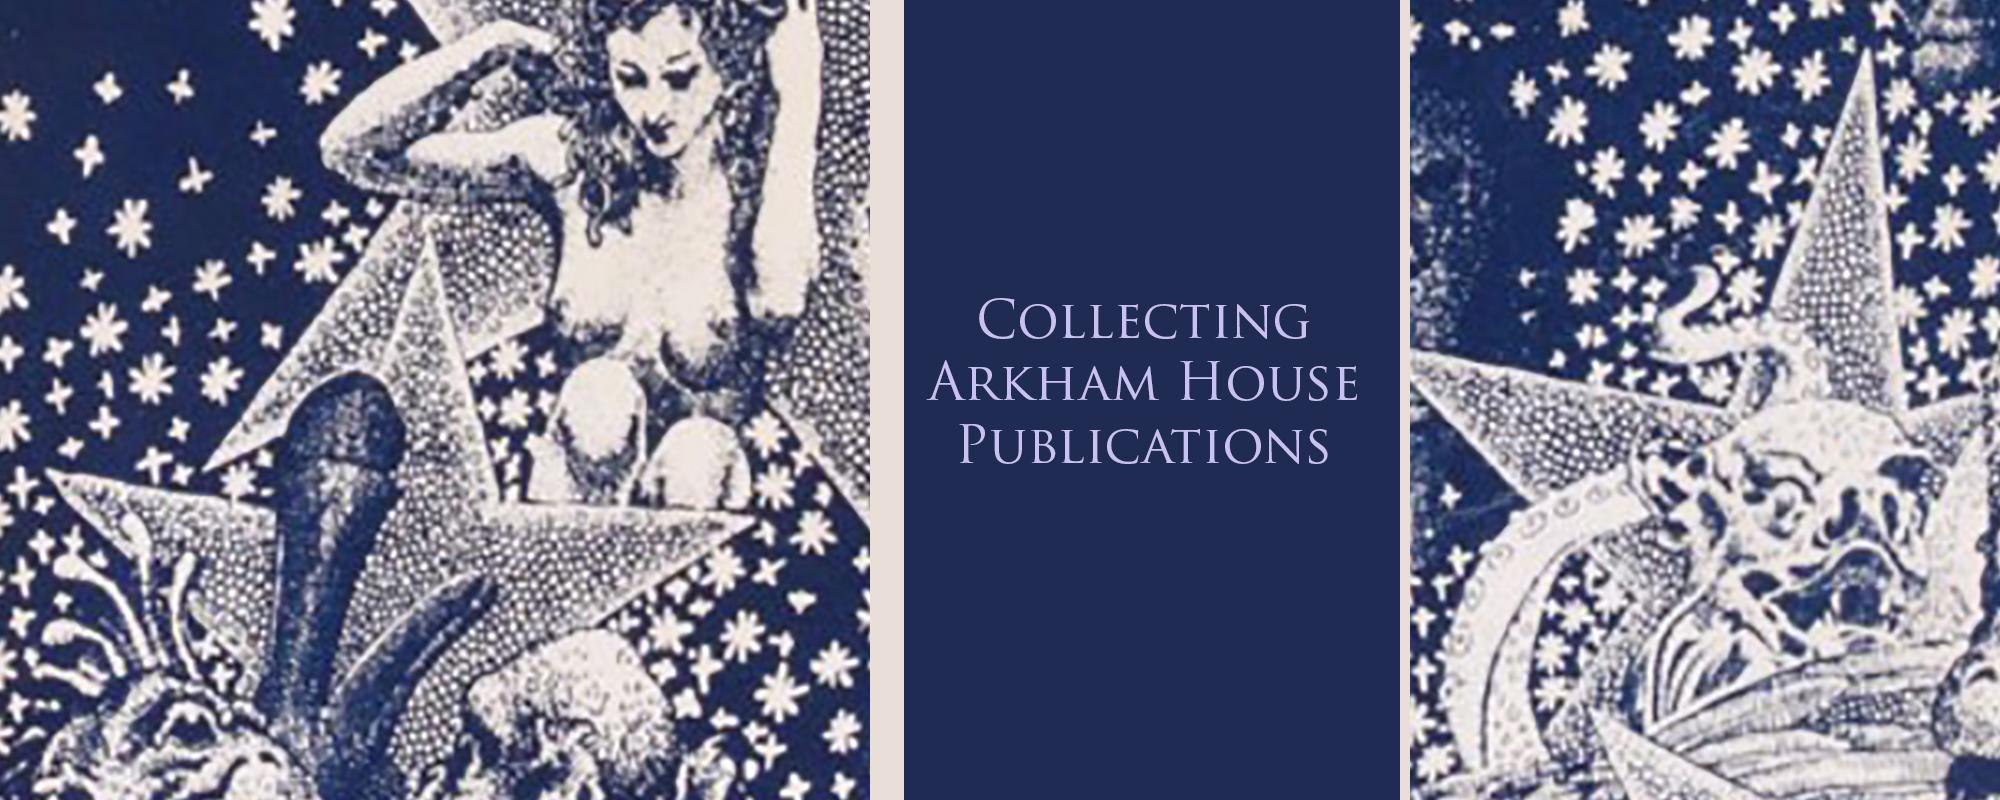 Collecting Arkham House